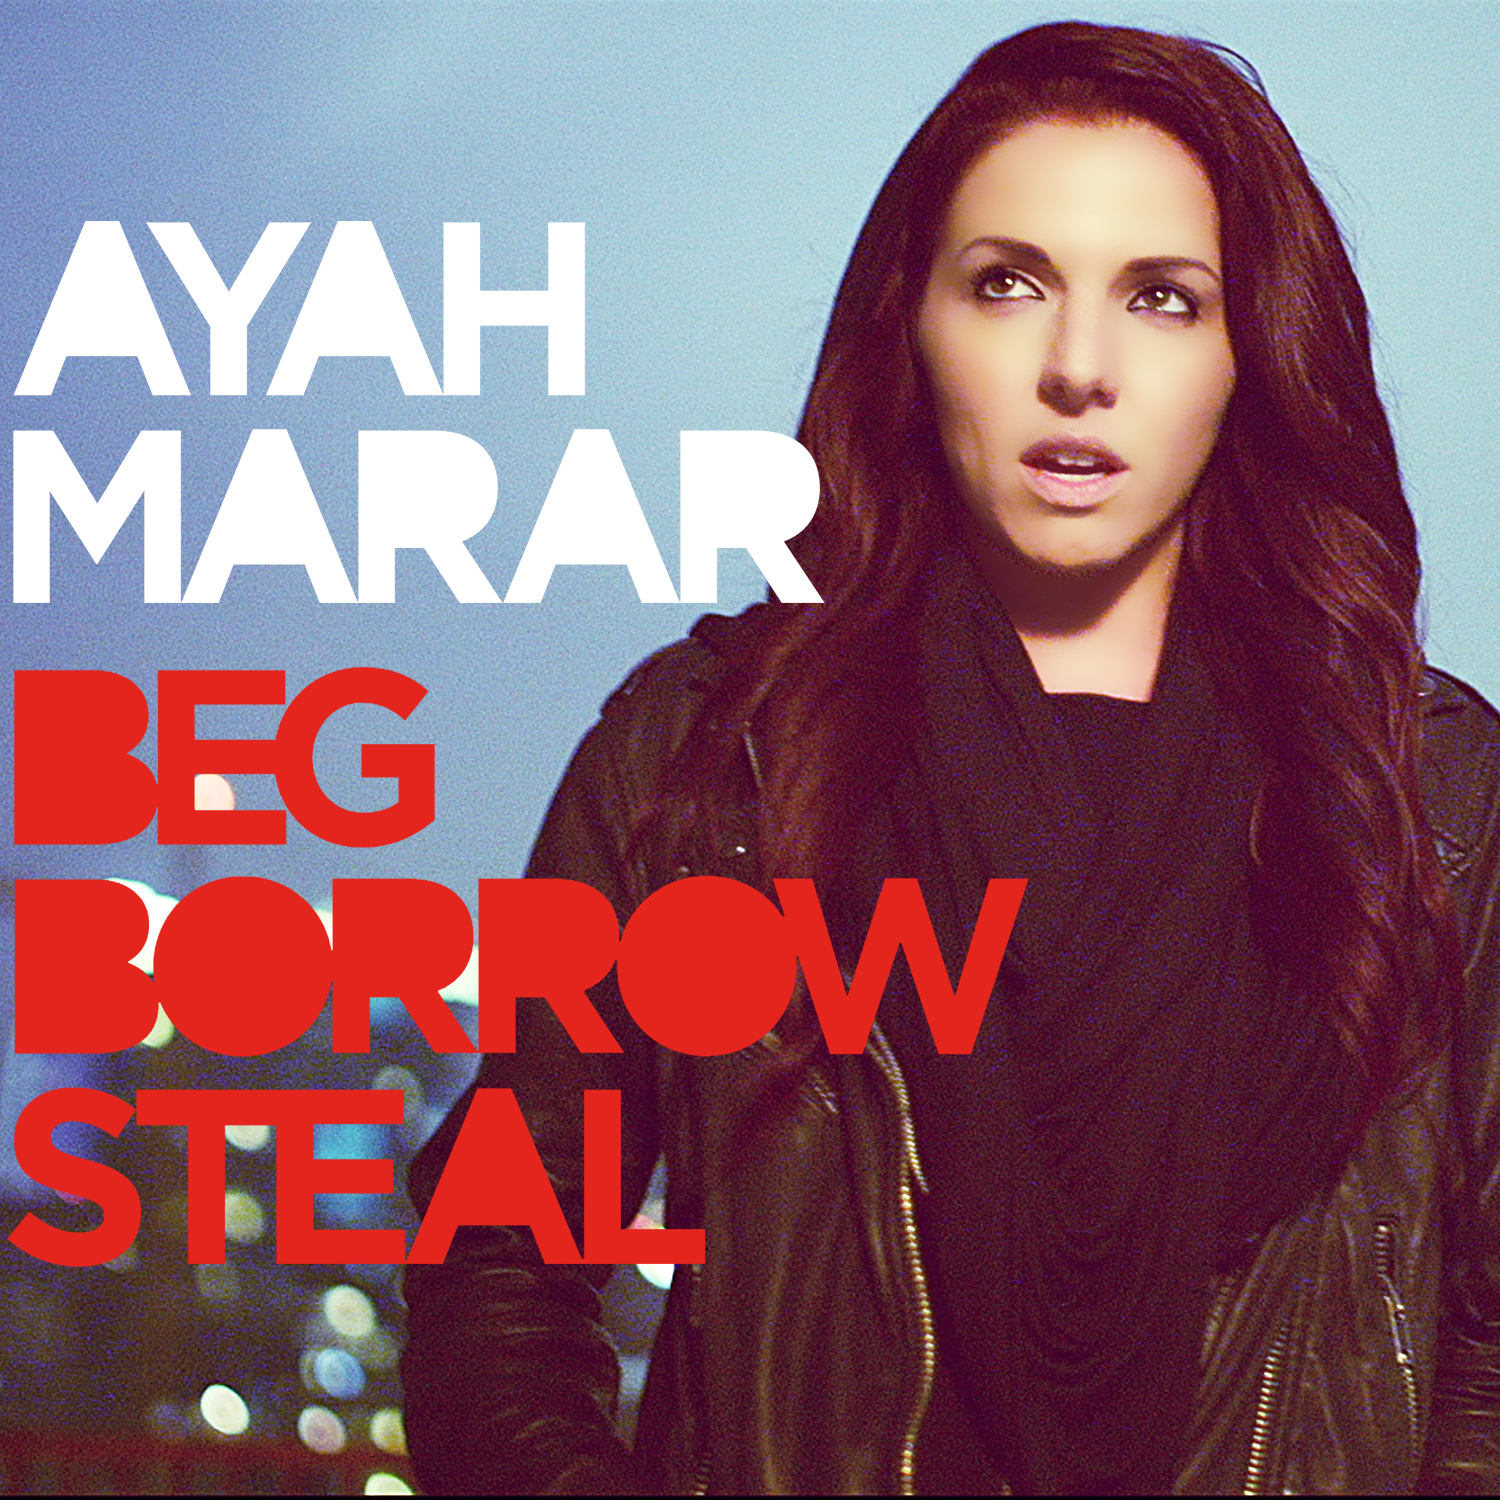 Ayah Marar – Beg Borrow Steal Remixes